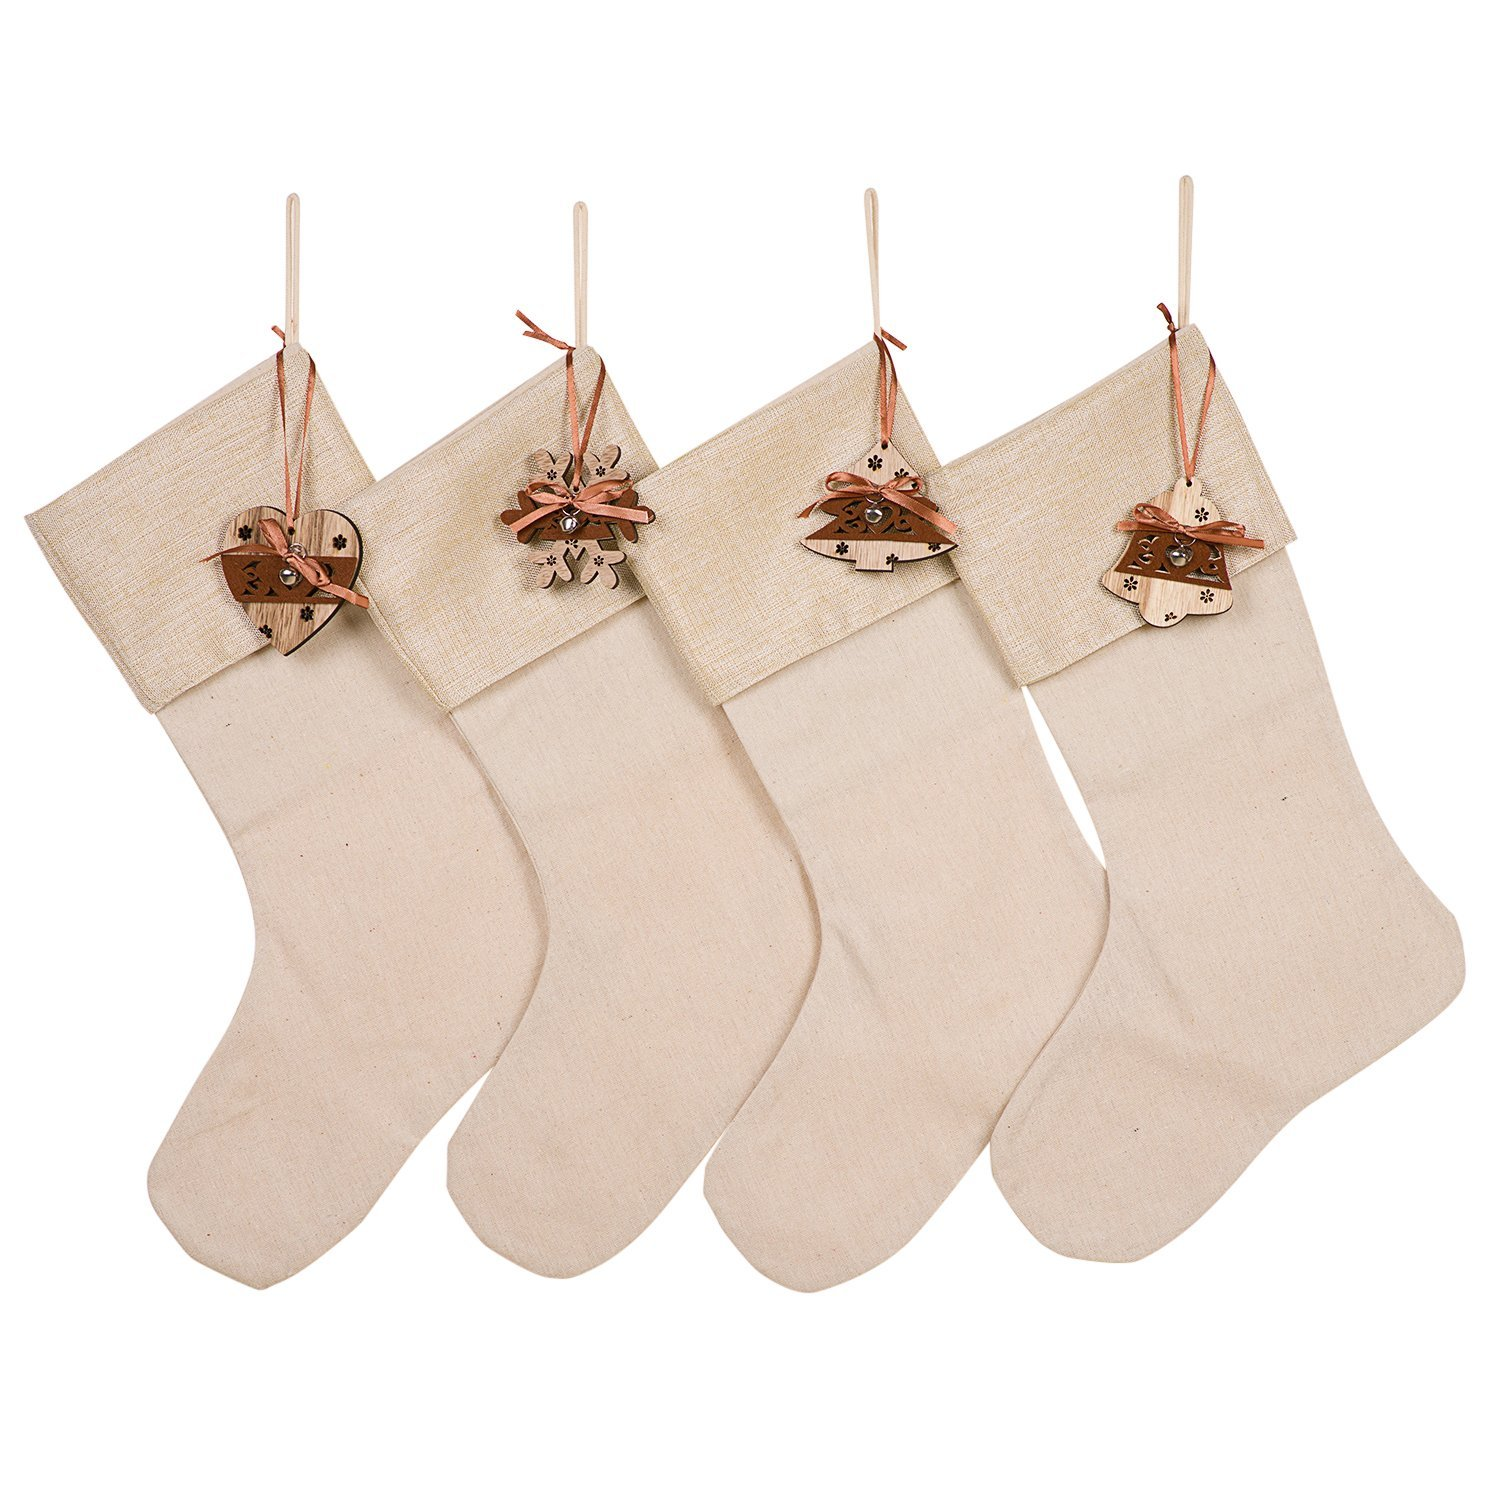 Rustic Burlap Rustic Christmas Stockings